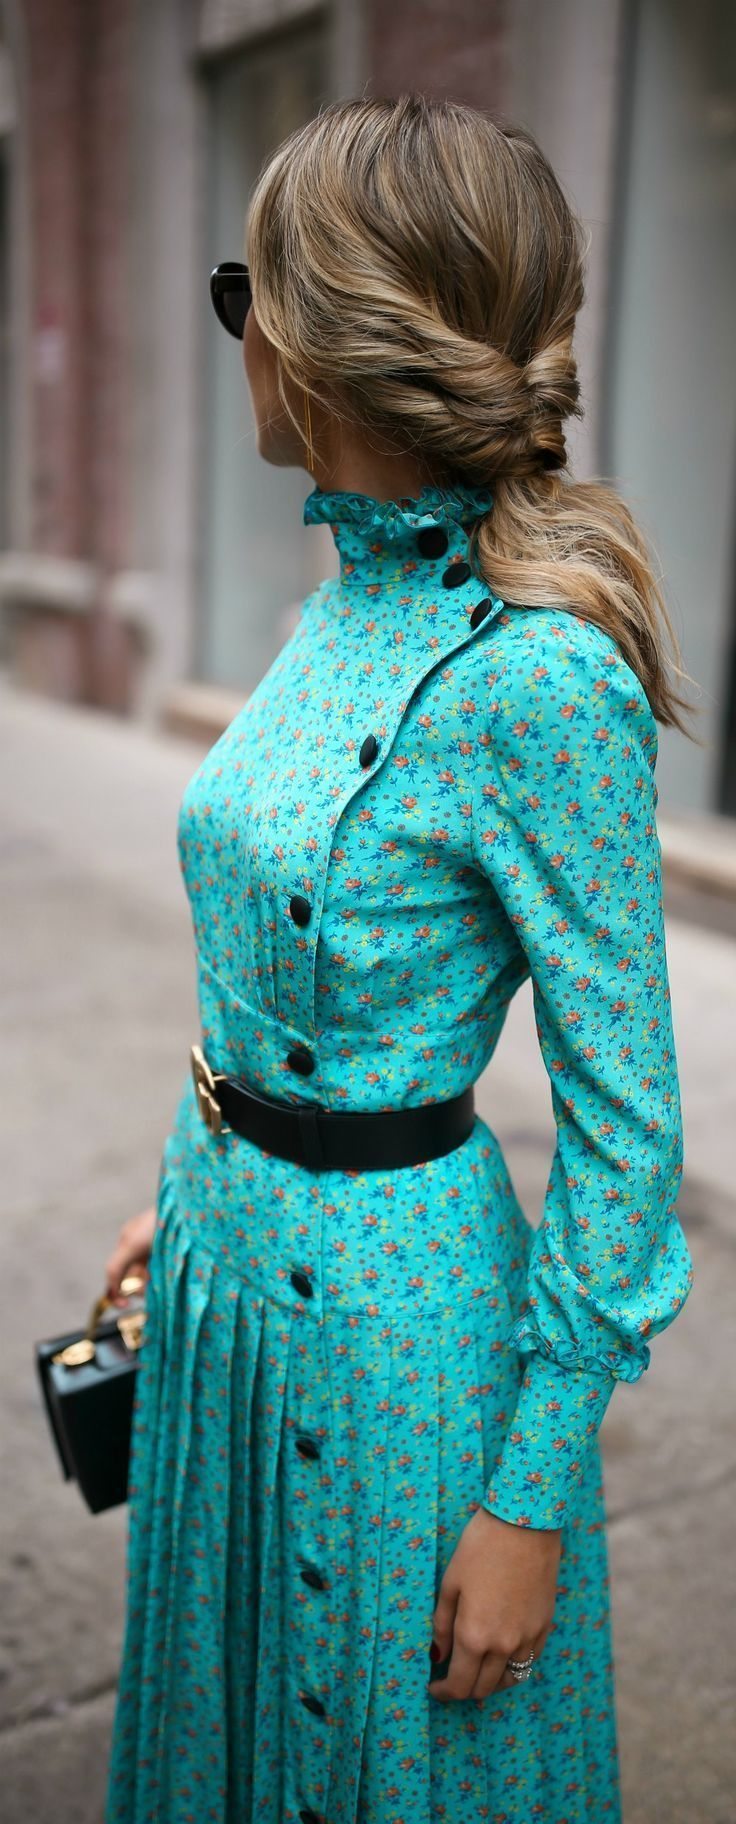 Fall Florals + Slide Pumps //  Turquoise floral victorian pleated maxi dress, small black box bag, leather belt, black sunglasses {Alessandra Rich, Mark Cross, Gucci, New York Fashion Week, NYFW}